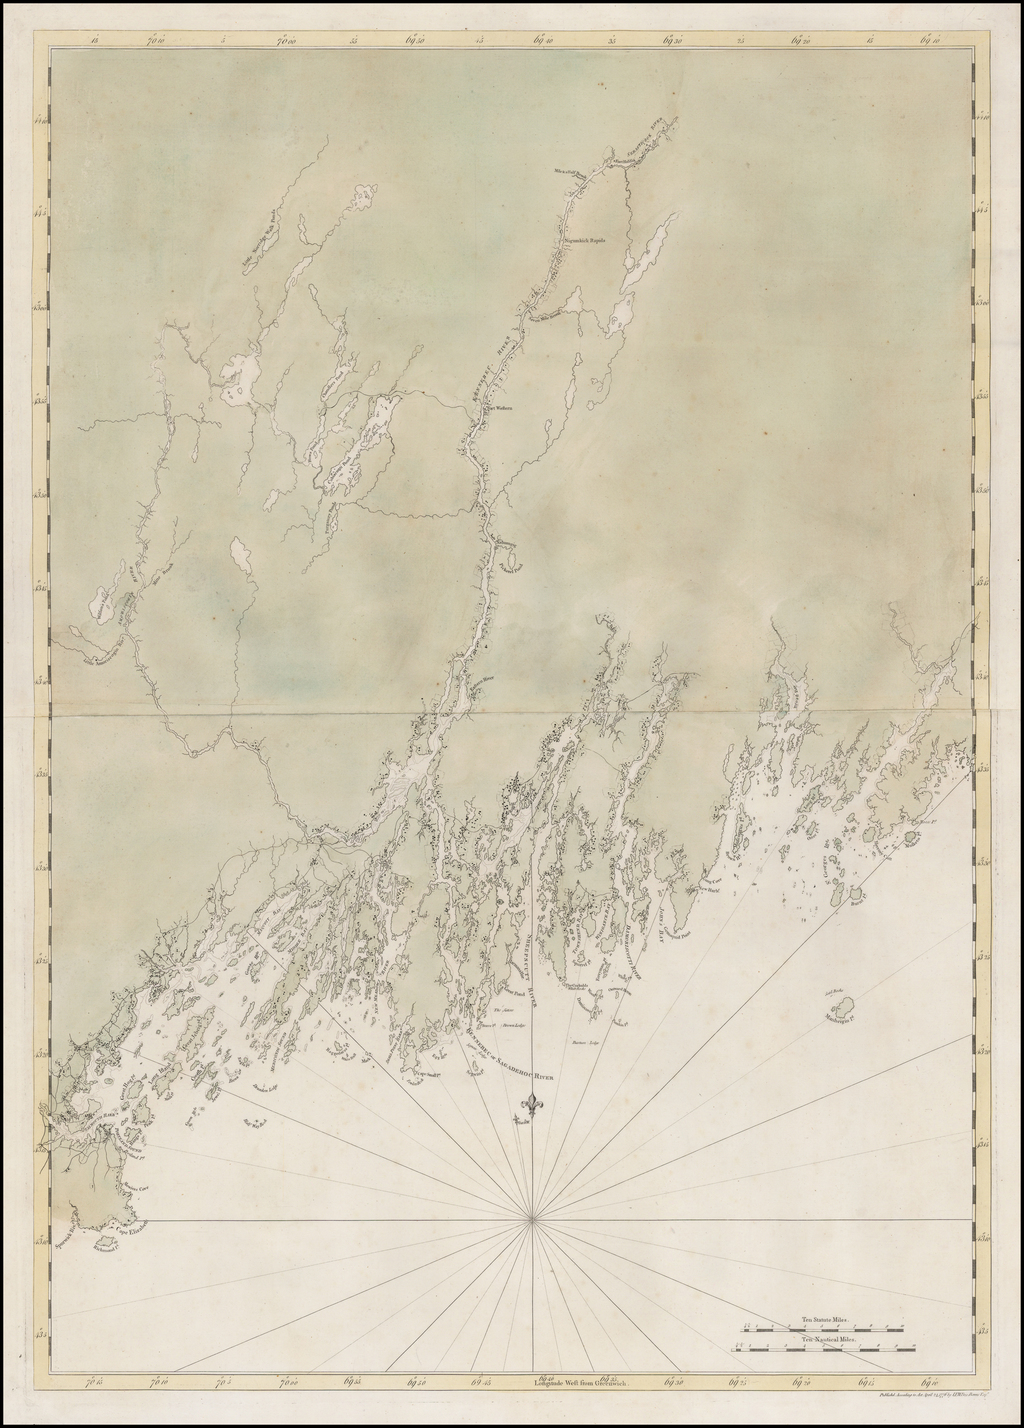 [Cape Elizabeth to Moose Point, Maine] By Joseph Frederick Wallet Des Barres